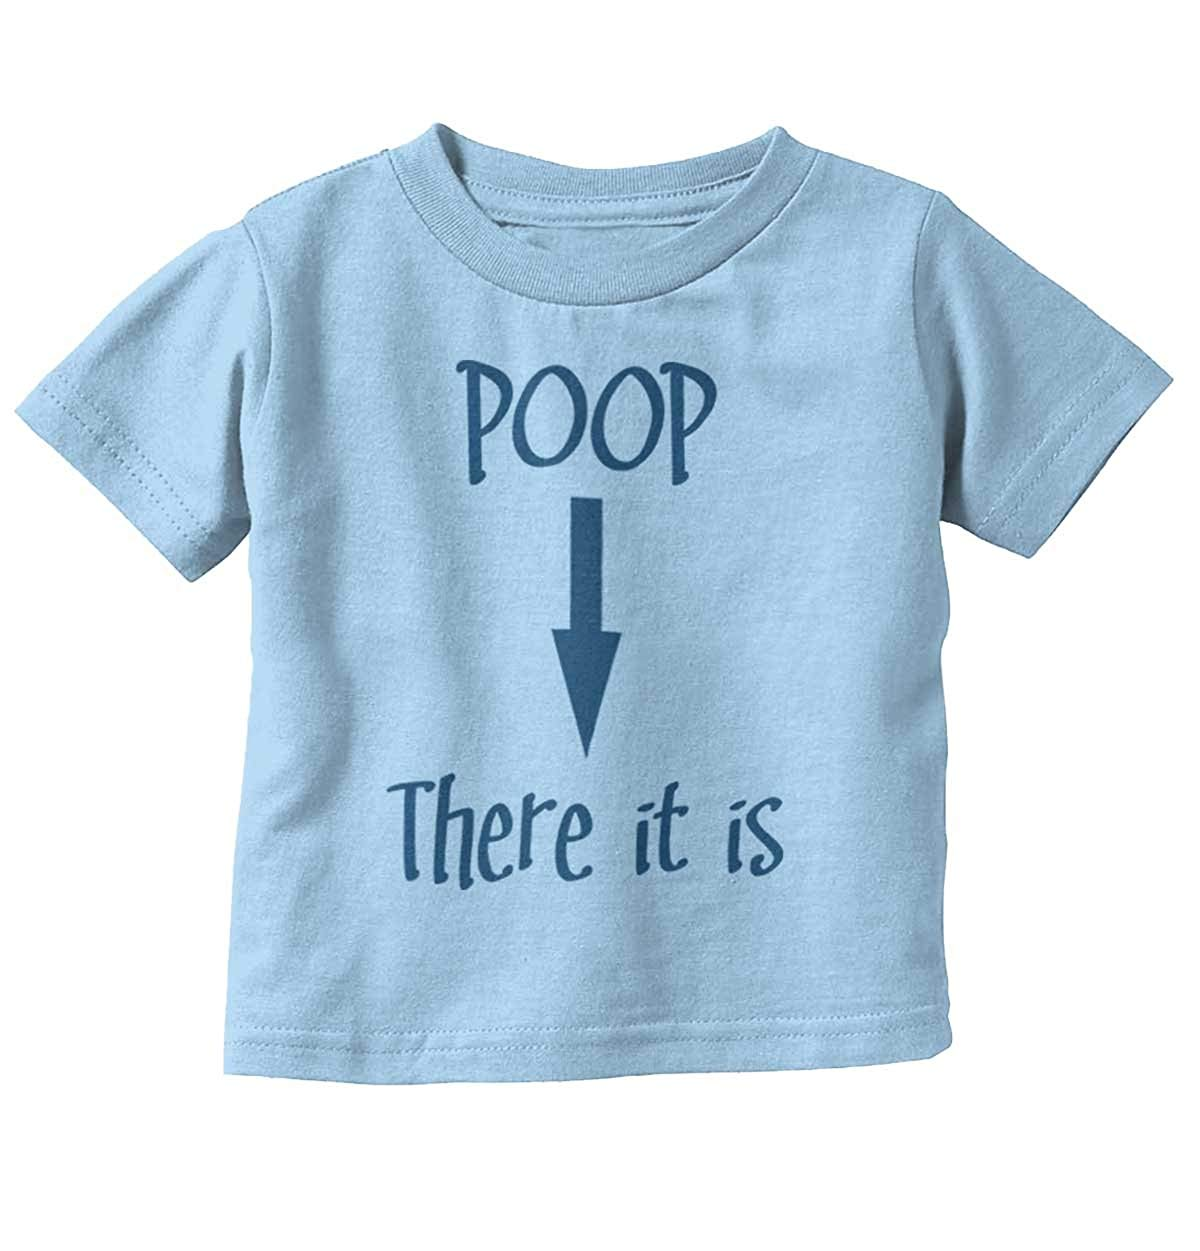 1540b3707 Get Quotations · Brisco Brands Poop There It is Song Funny Quote Ironic  Cute Newborn Baby Infant Toddler T